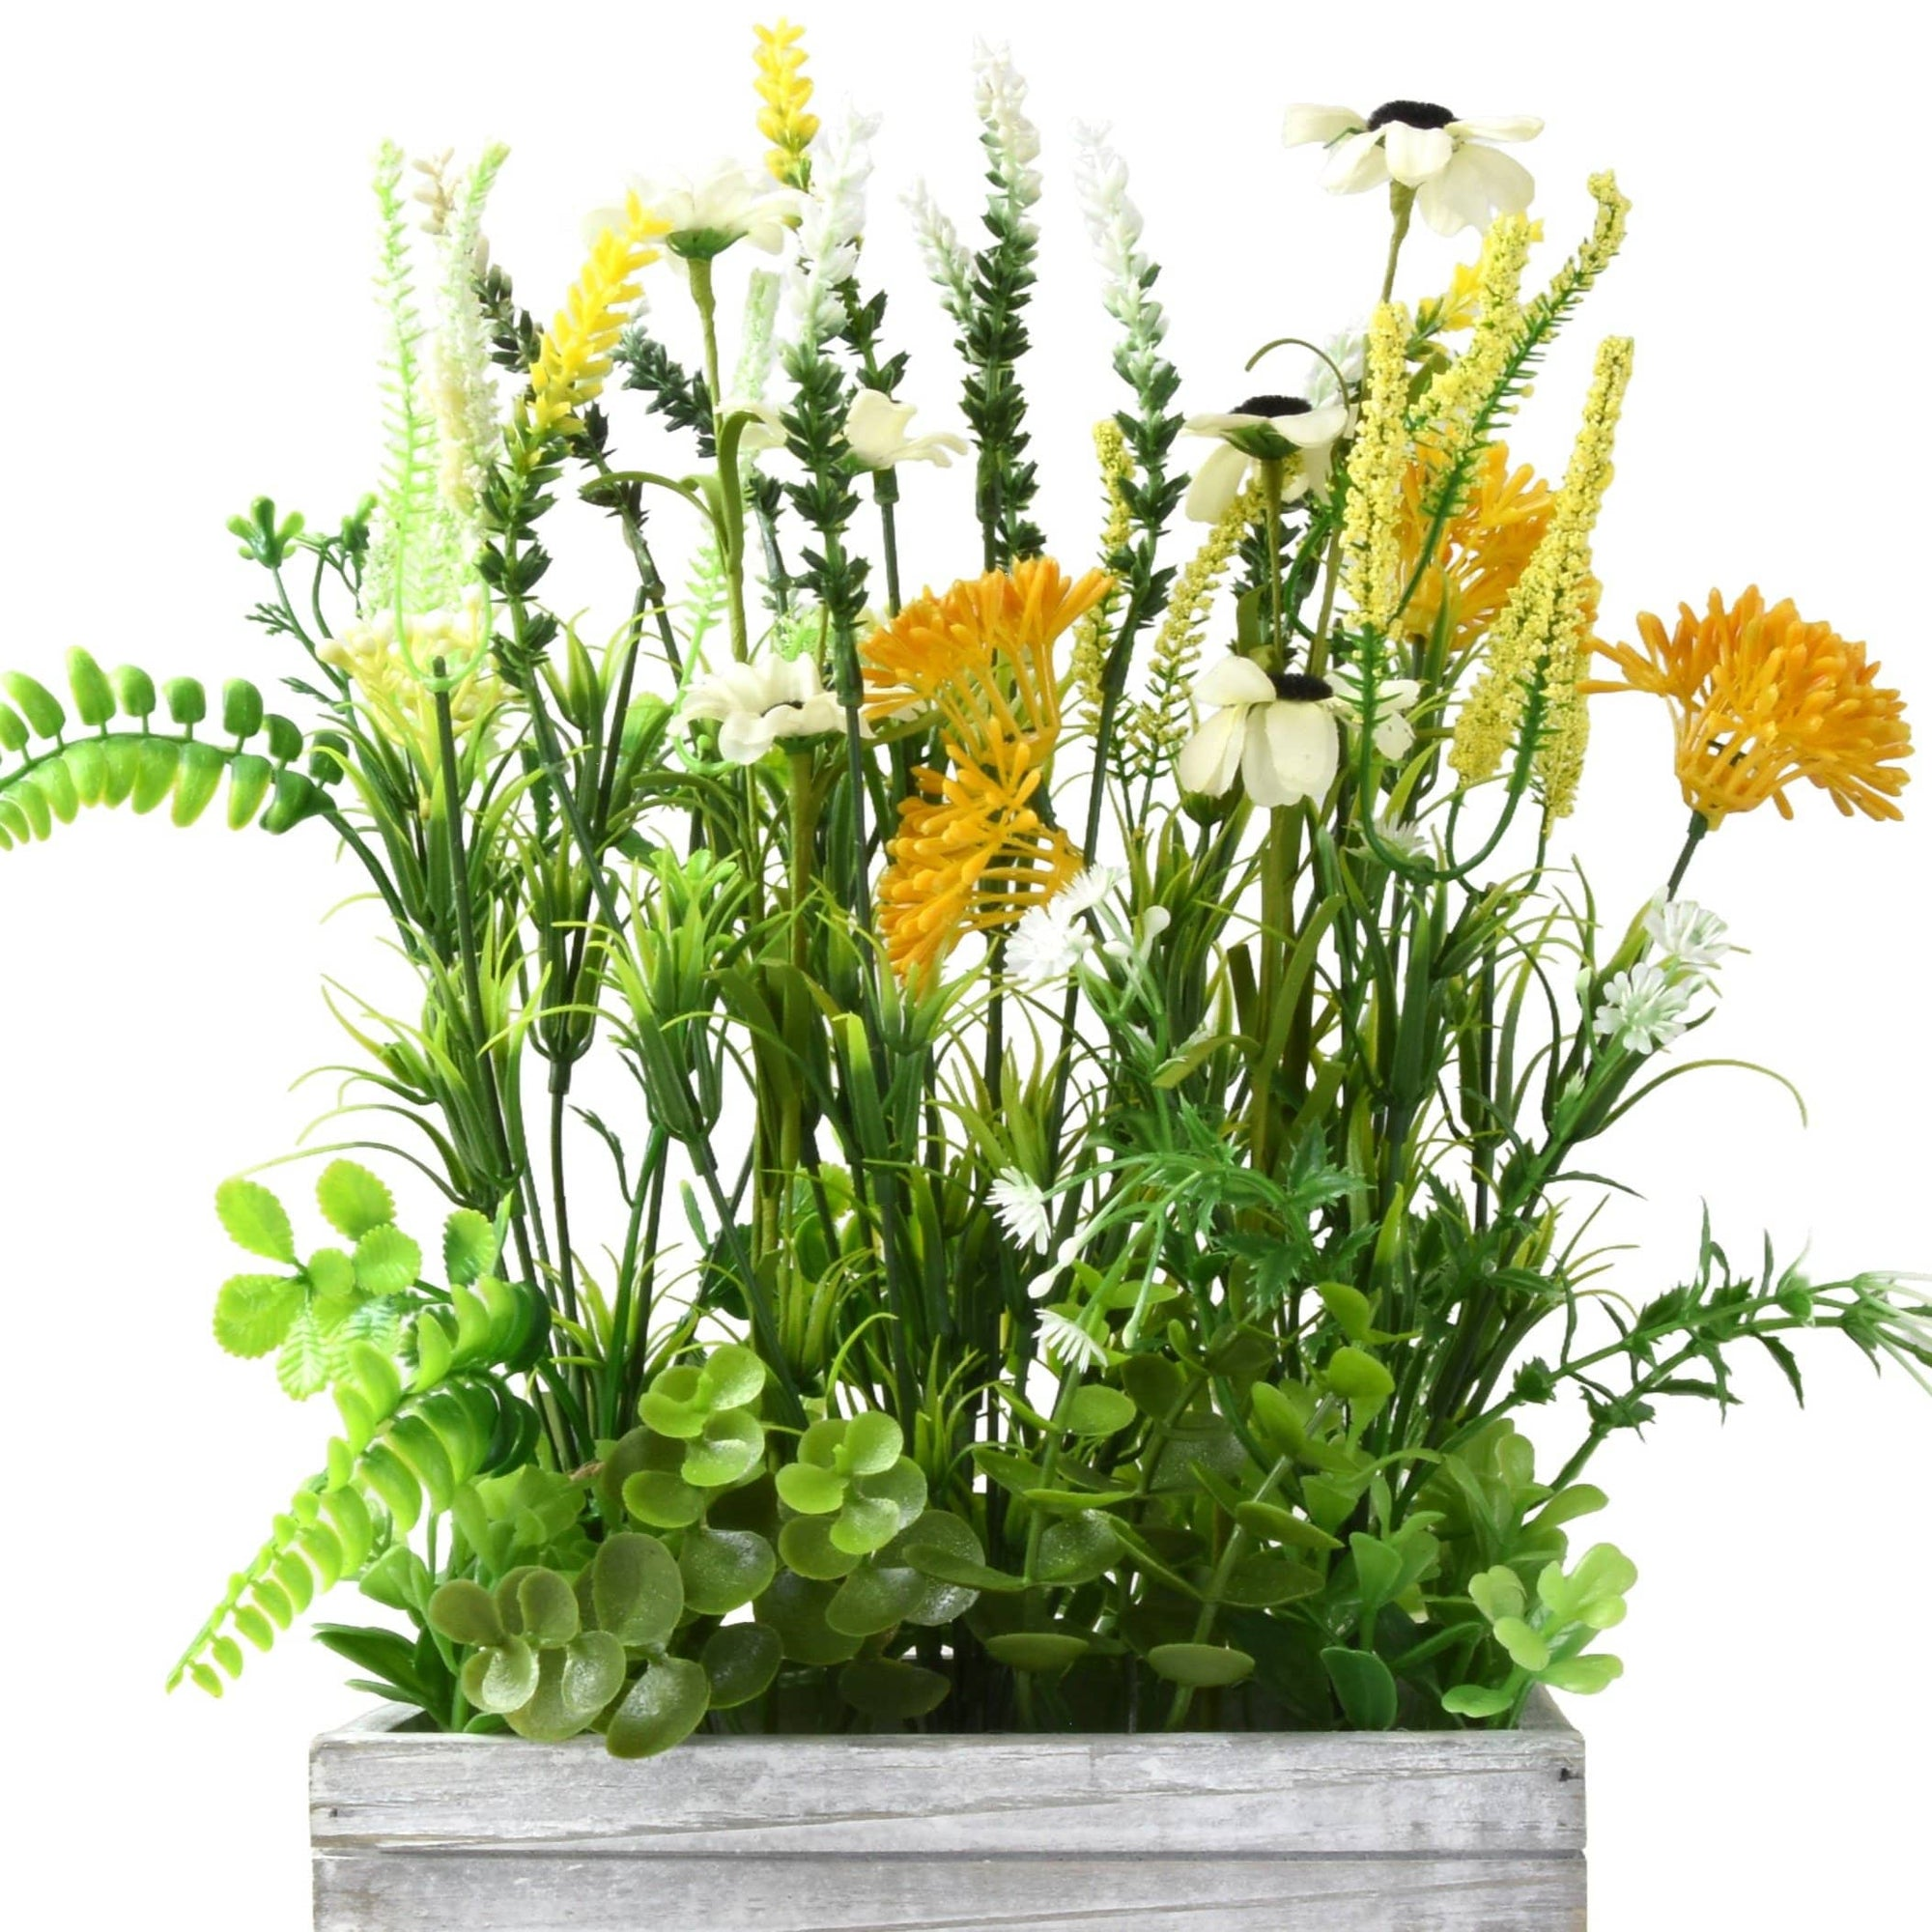 Faux Wild Flowers Window Box Arrangement In Rustic Wooden Crate 6pk Candlelight Home